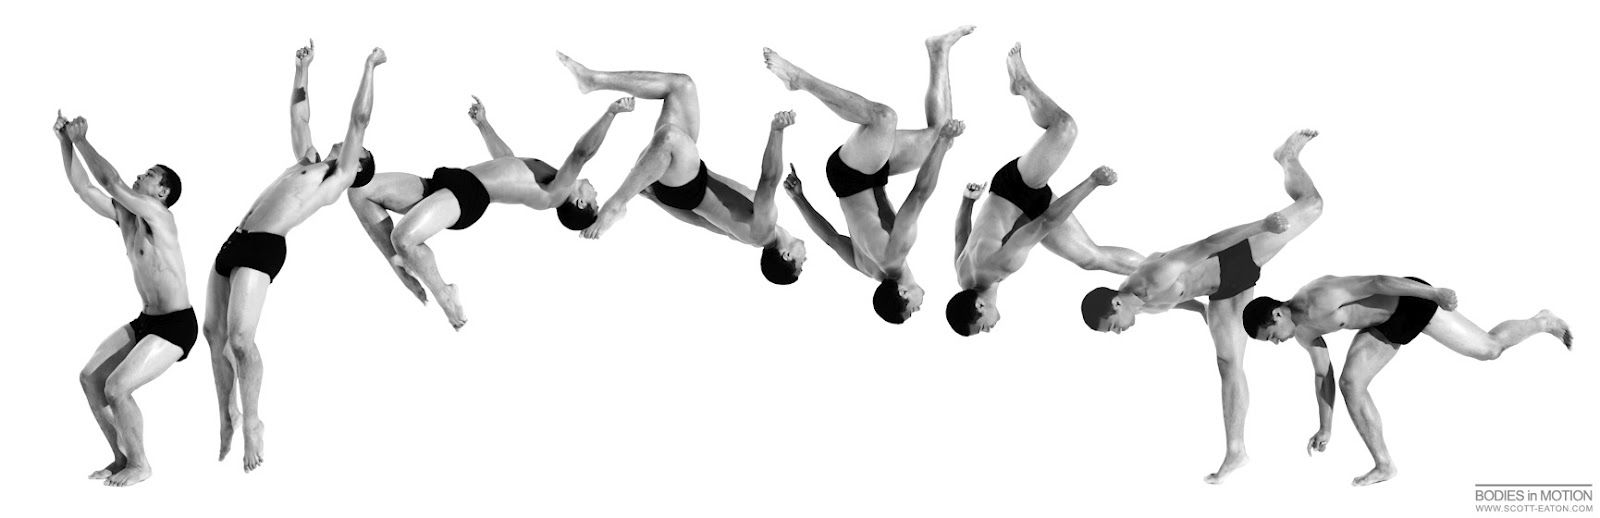 Backflip animation pinterest motion photography and animation bodies in motion photography dynamic figure reference for artists martial arts tricking jeuxipadfo Image collections